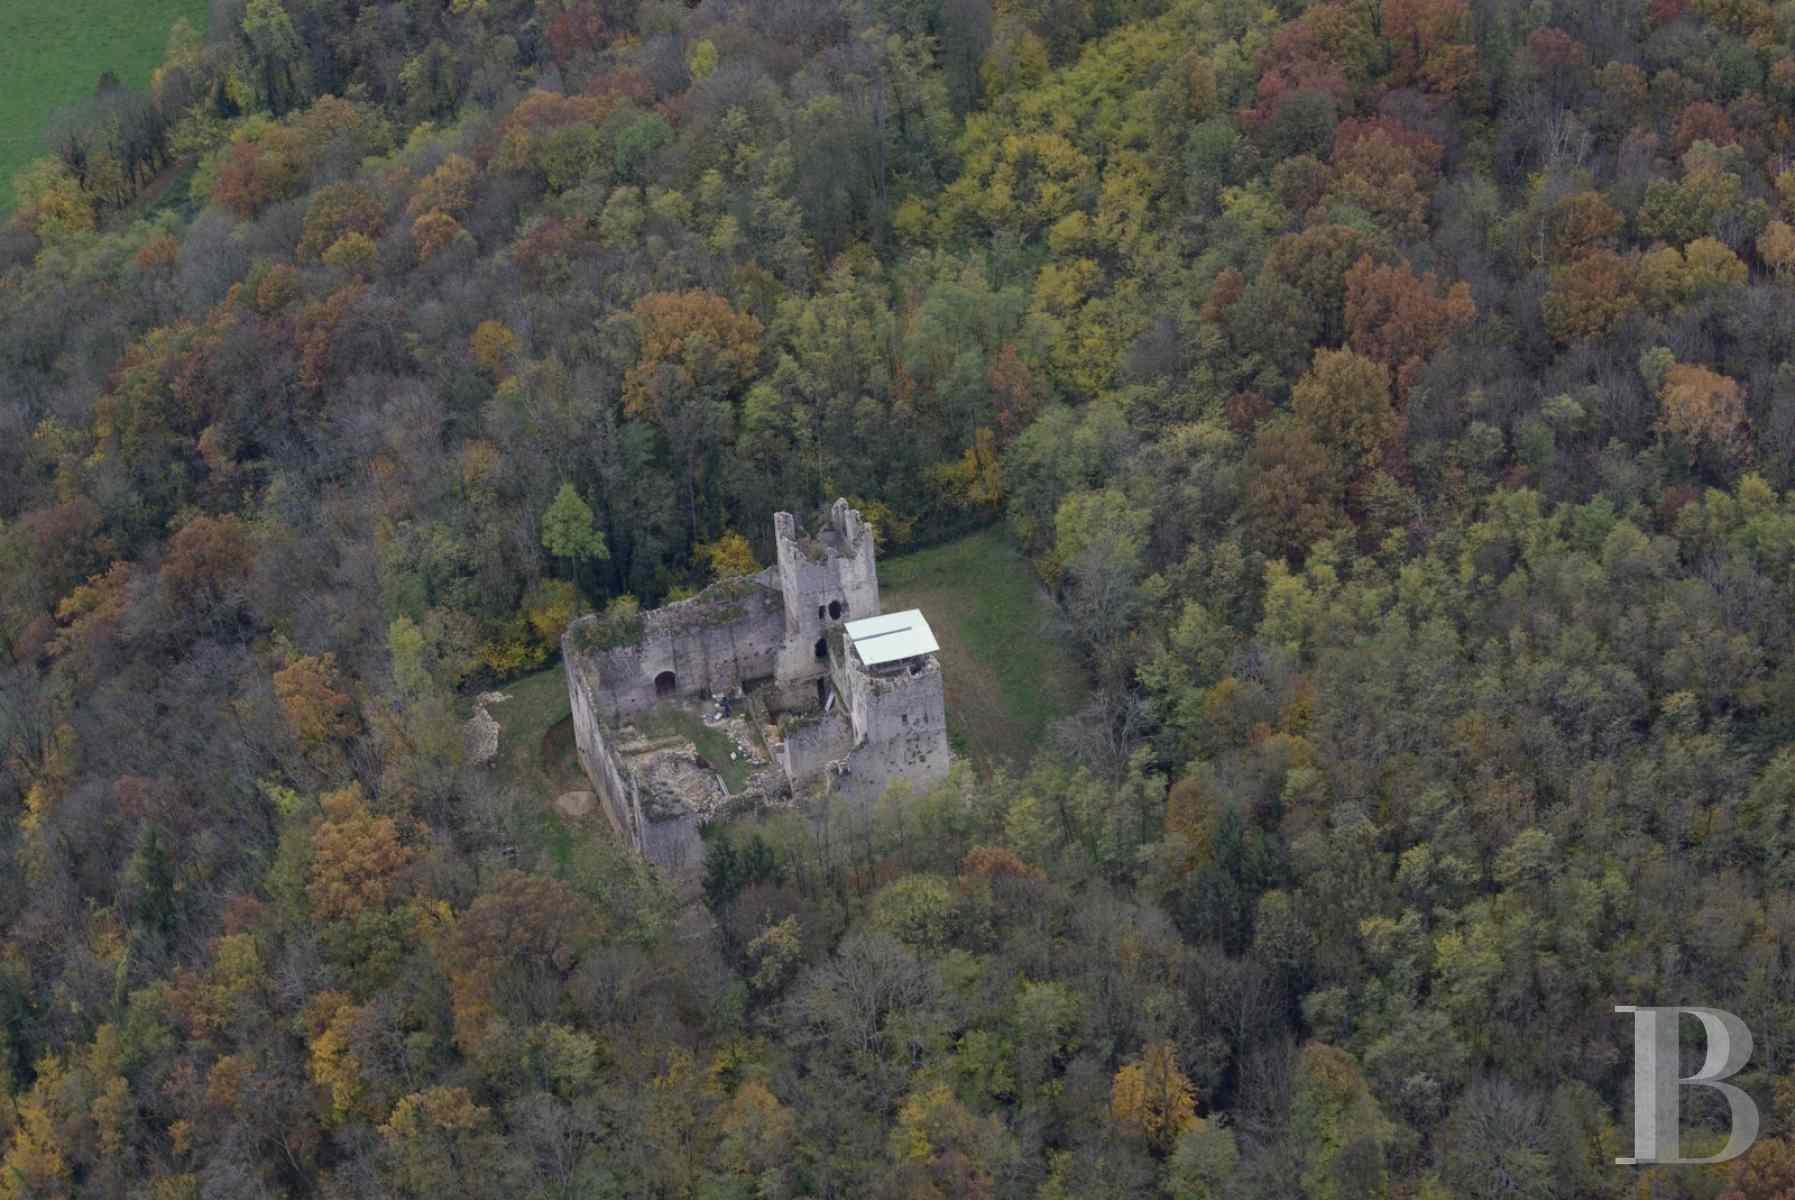 chateaux for sale France rhones alps property listed - 1 zoom